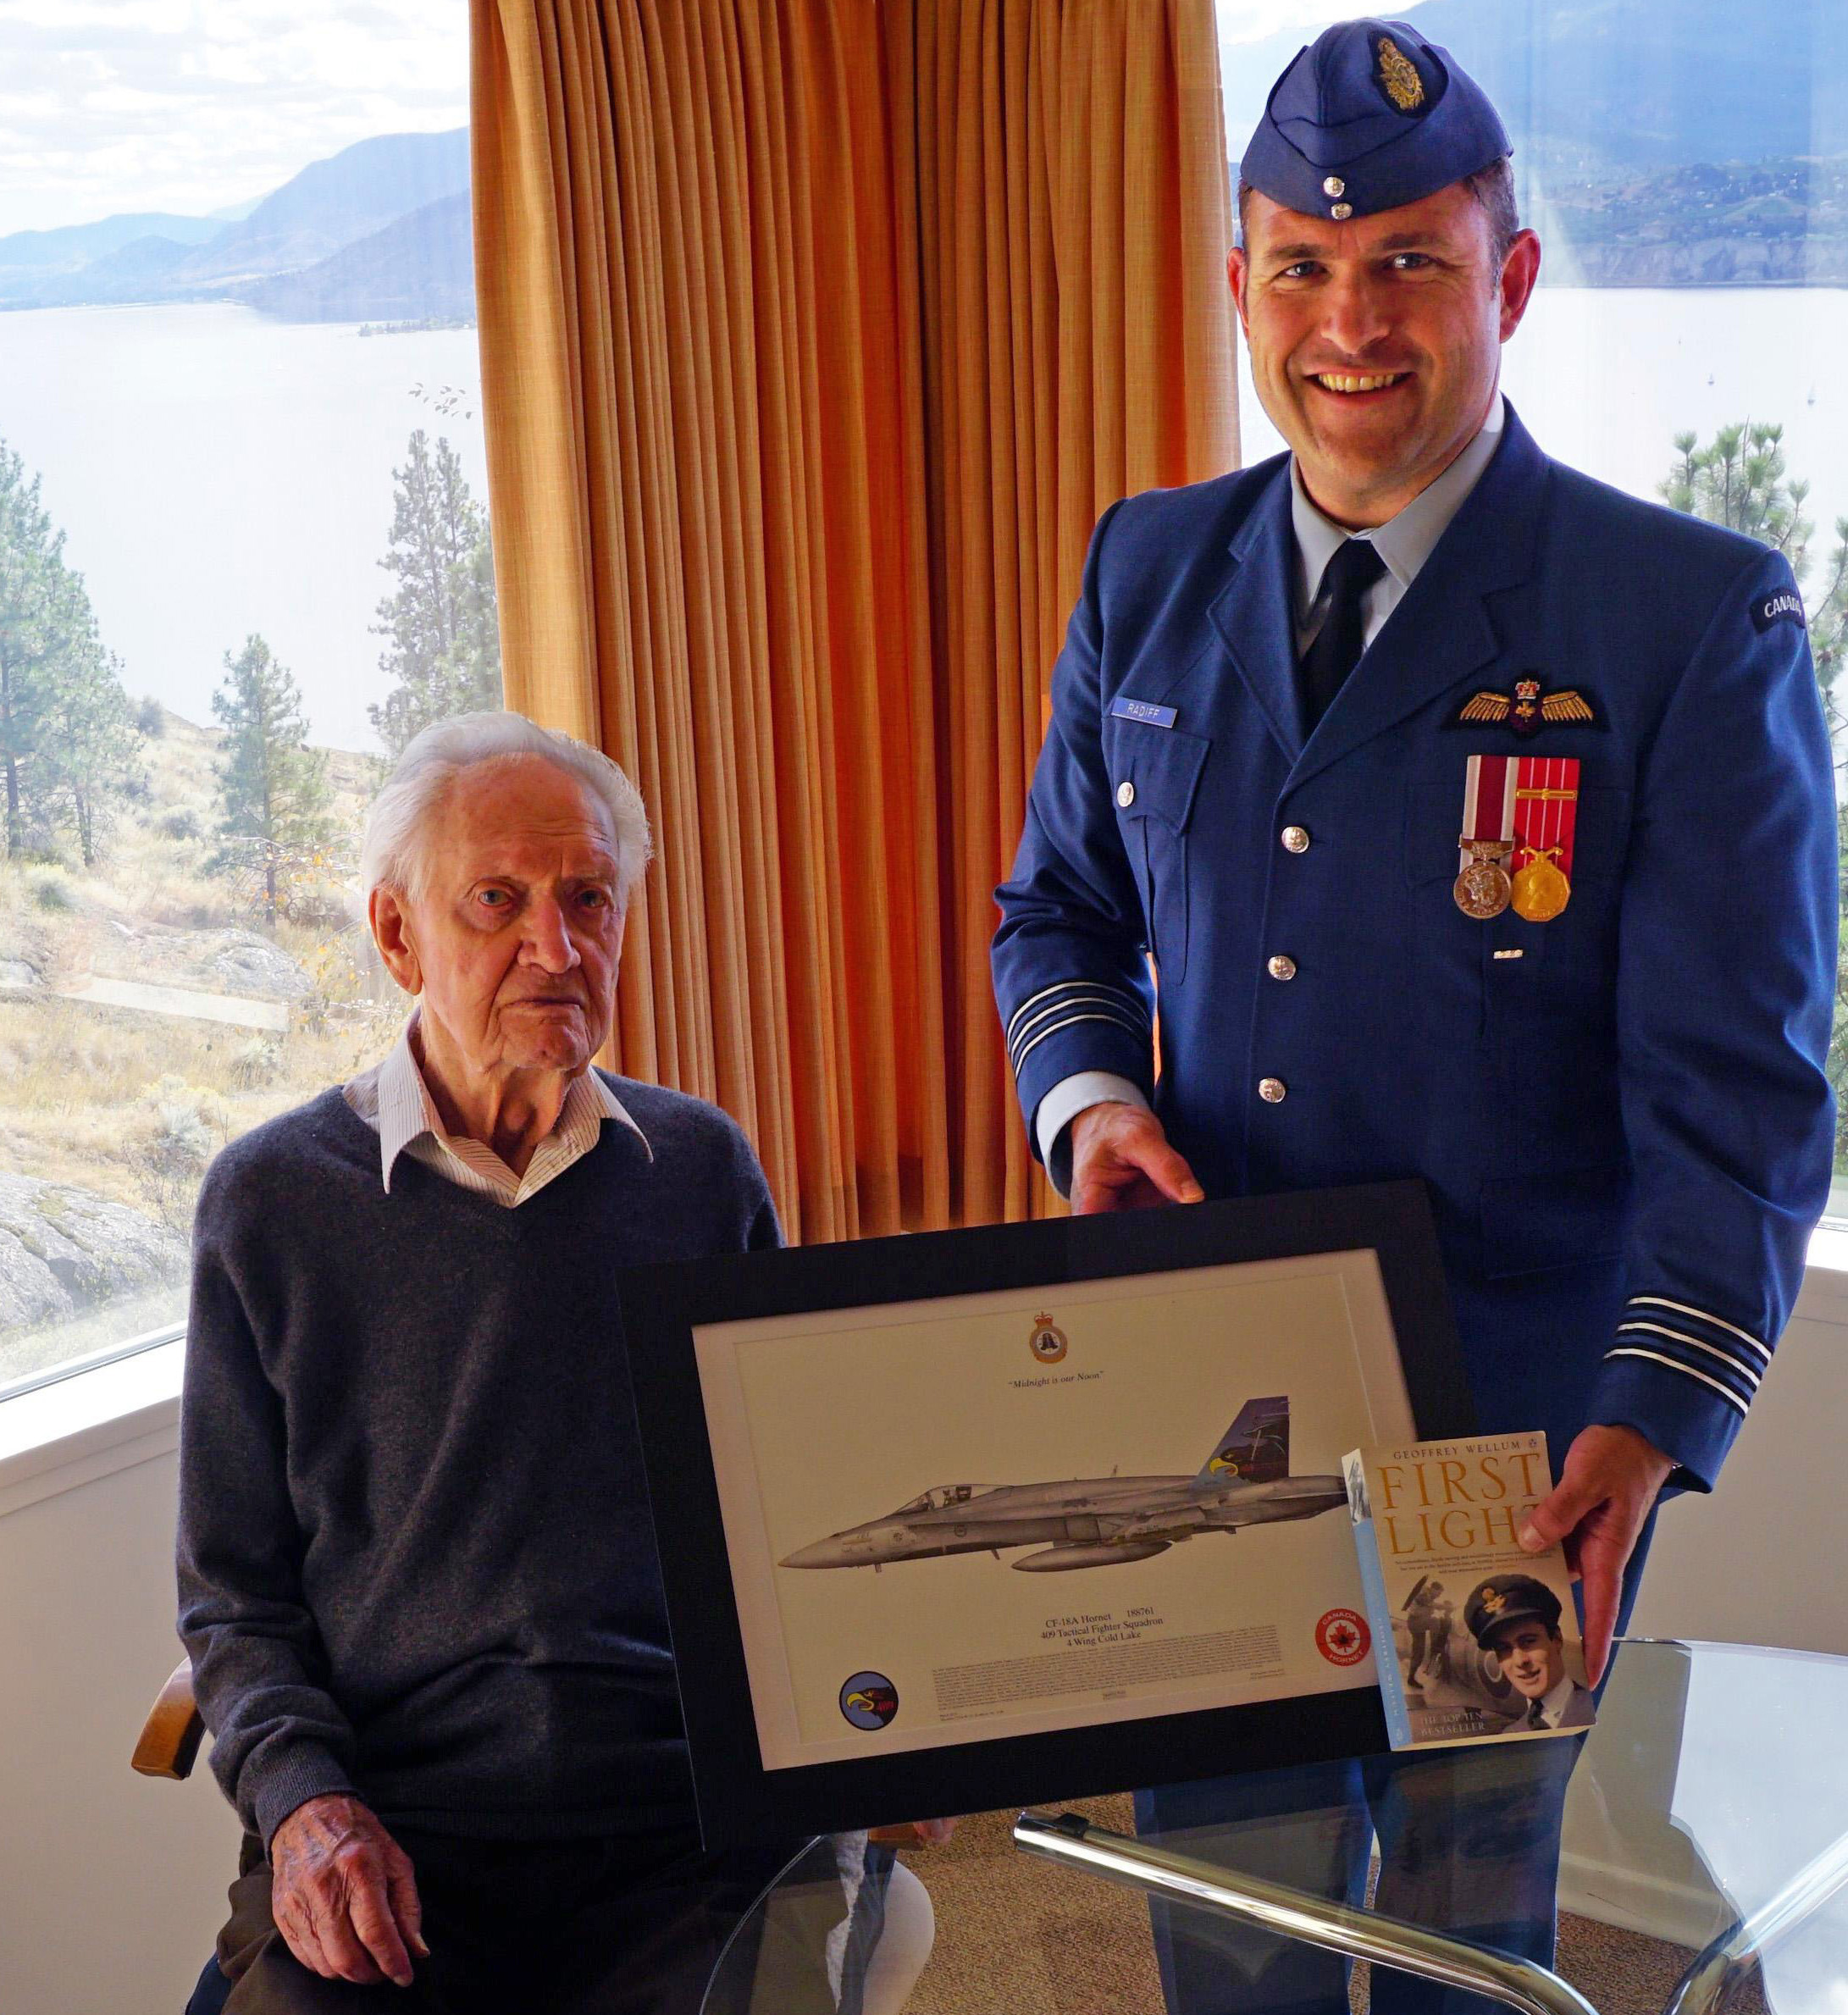 Lieutenant-Colonel William Radiff, commanding officer of 409 Squadron, presents Squadron Leader (retired) John Hart with a framed 409 Squadron commemorative print.  Squadron Leader John Hart presented Lieutenant-Colonel William Radiff a copy of the book First Light, written by Battle of Britain pilot Geoffrey Wellum, explaining that it is a very accurate description of what it was like to be a fighter pilot in the Second World War. PHOTO: Submitted